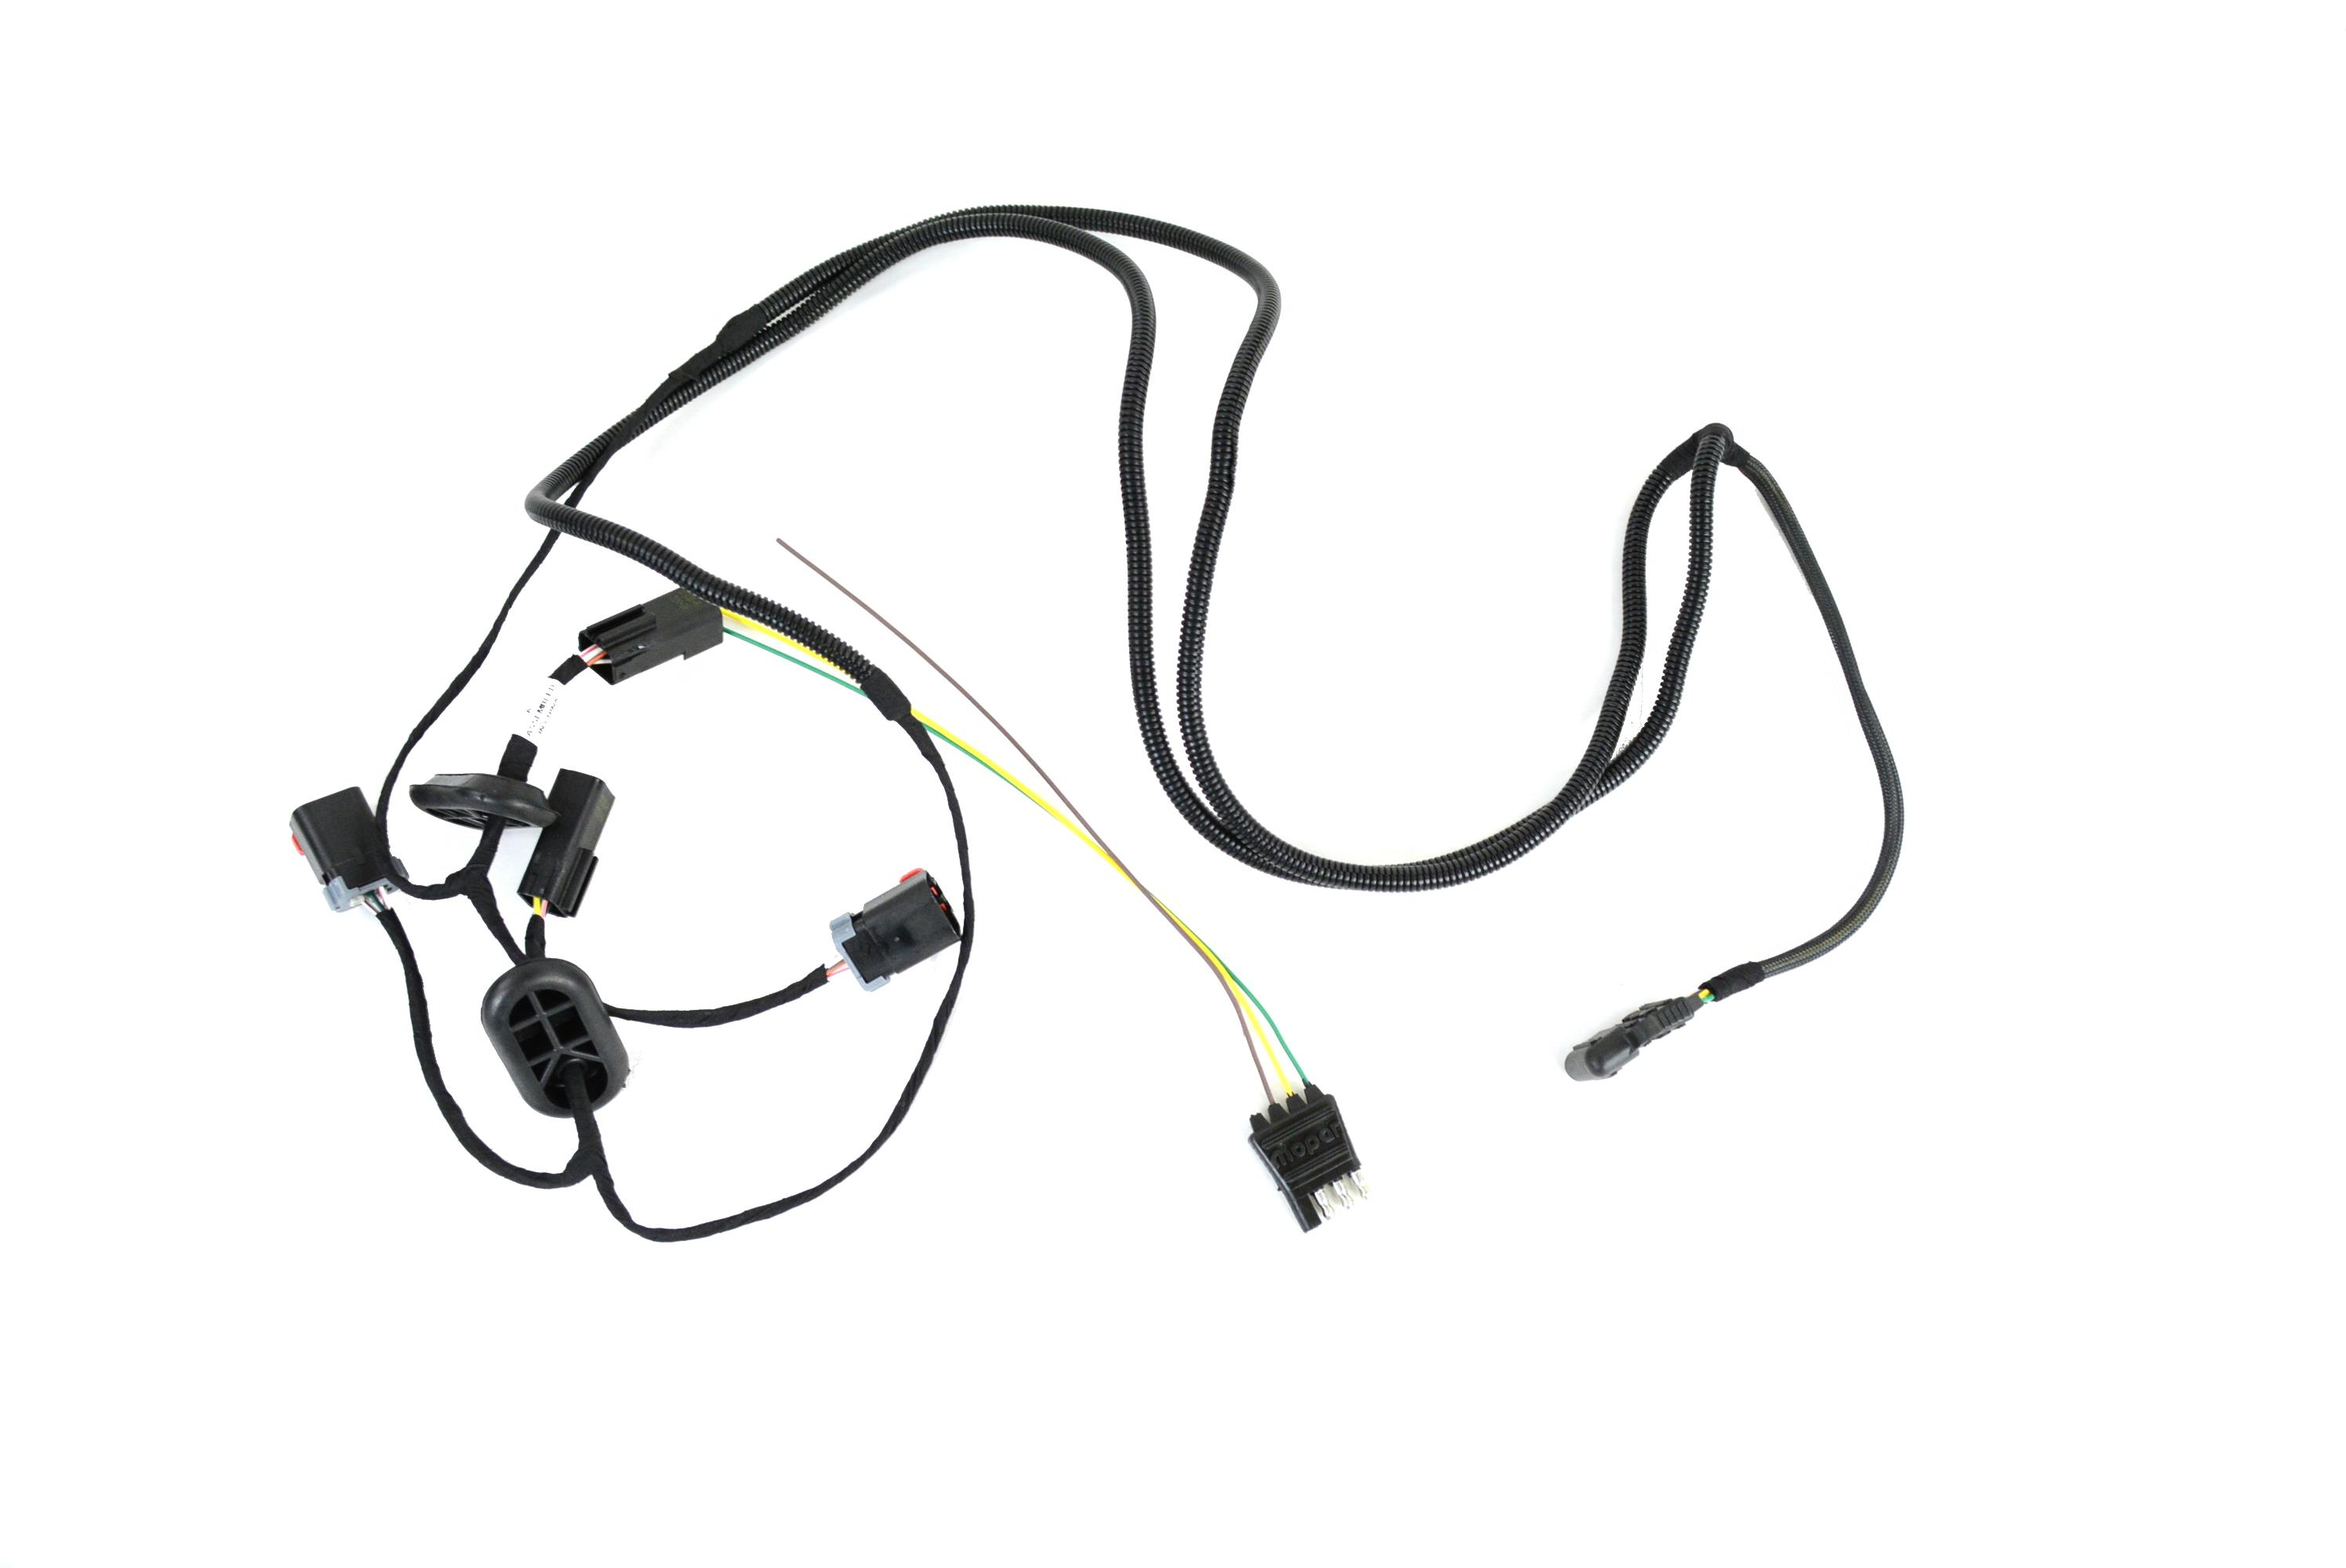 Chrysler Pacifica Trailer Tow Wiring Harness Kit With 4